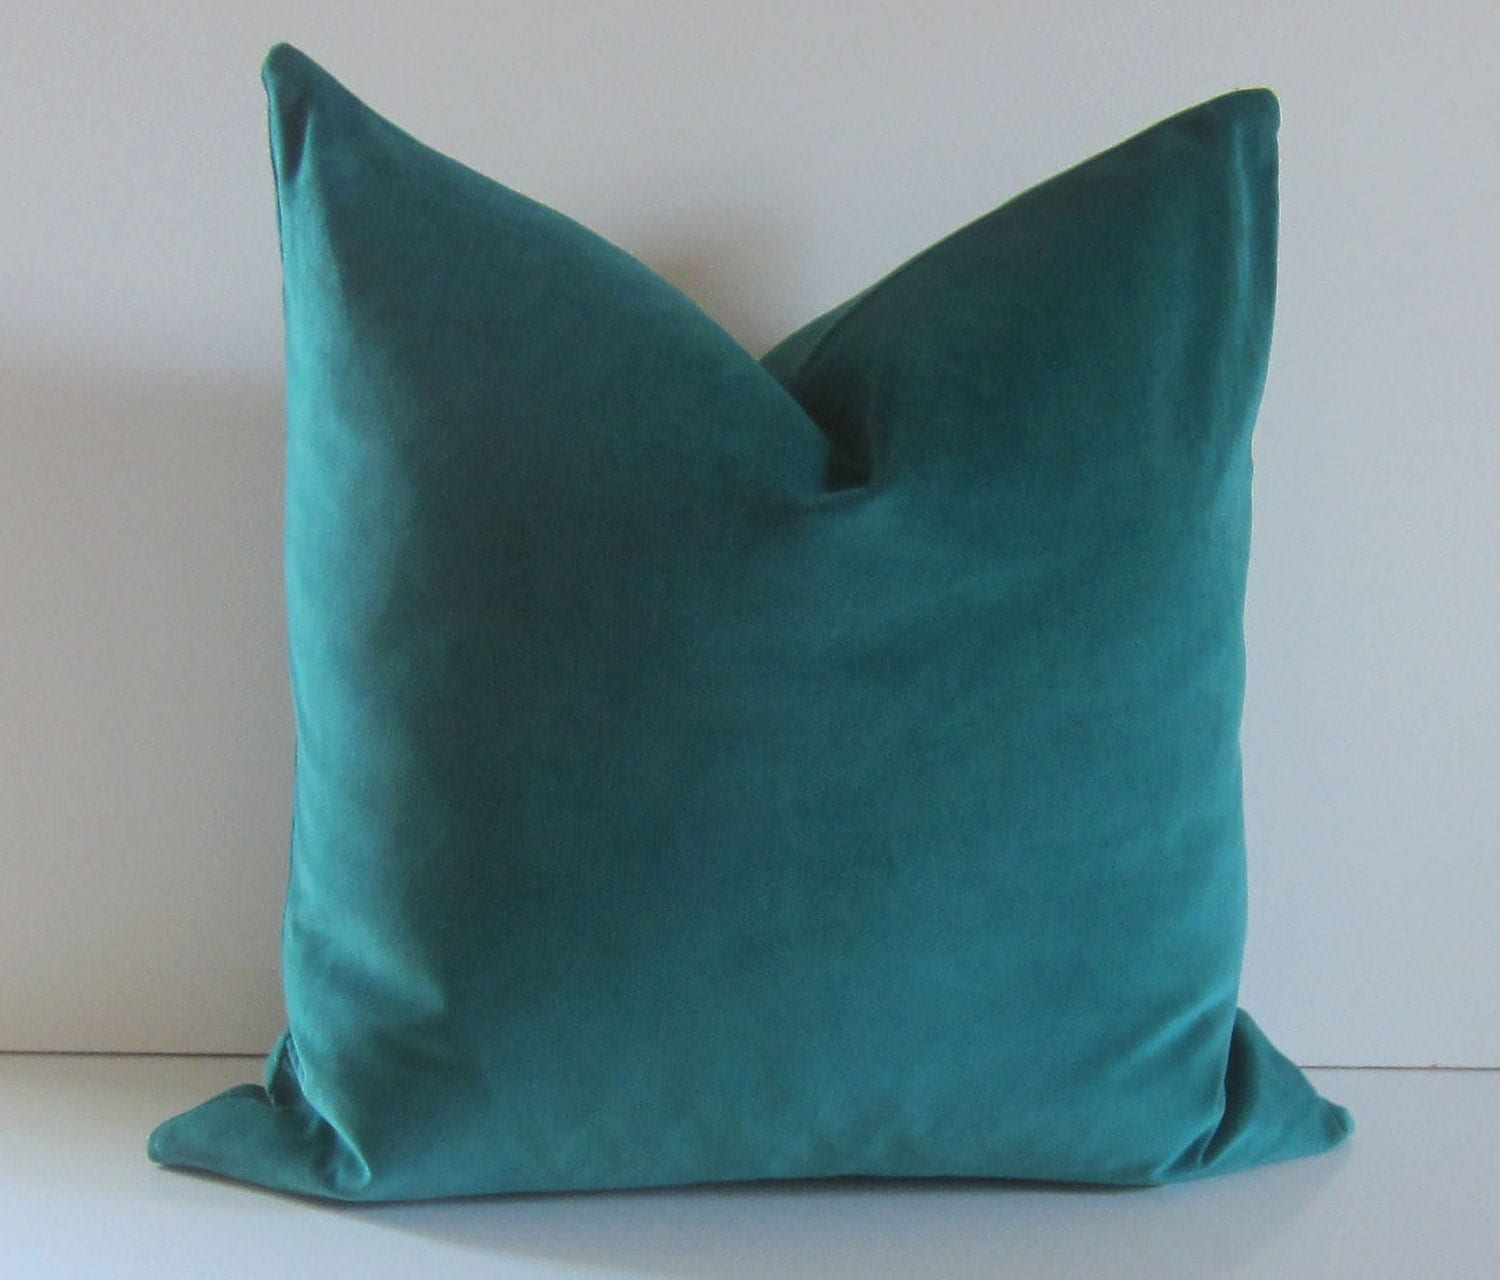 Teal Decorative Bed Pillows : Decorative Pillow Cover 20 inch teal velvet cotton